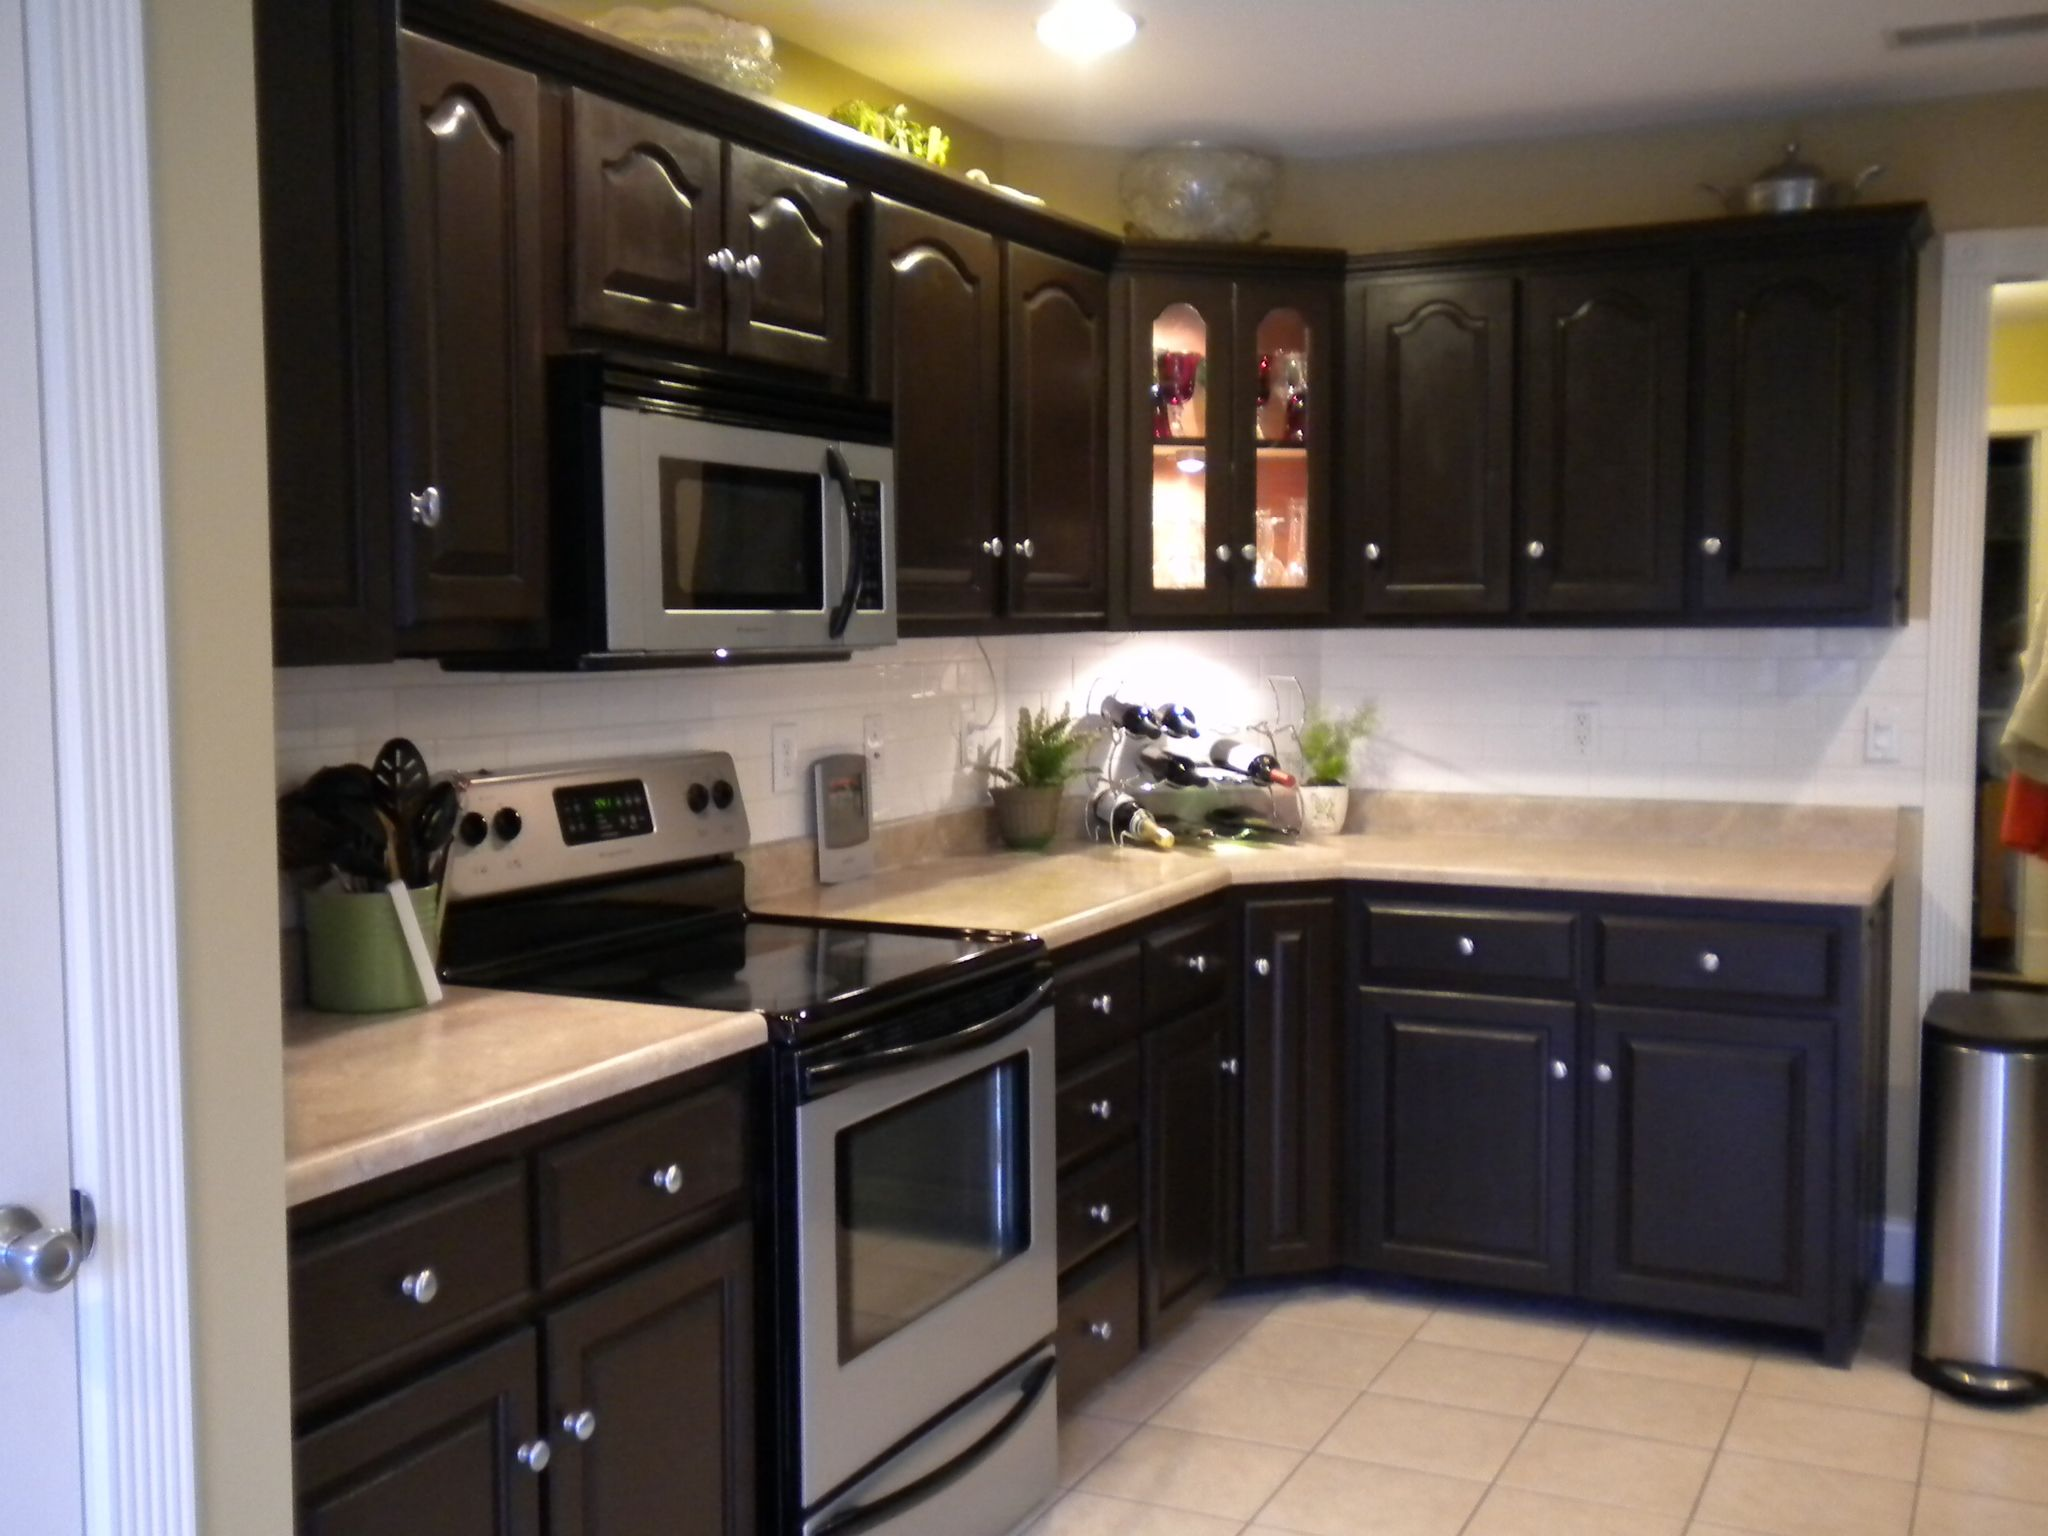 Refinished our old OAK cabinets with espresso finish ...